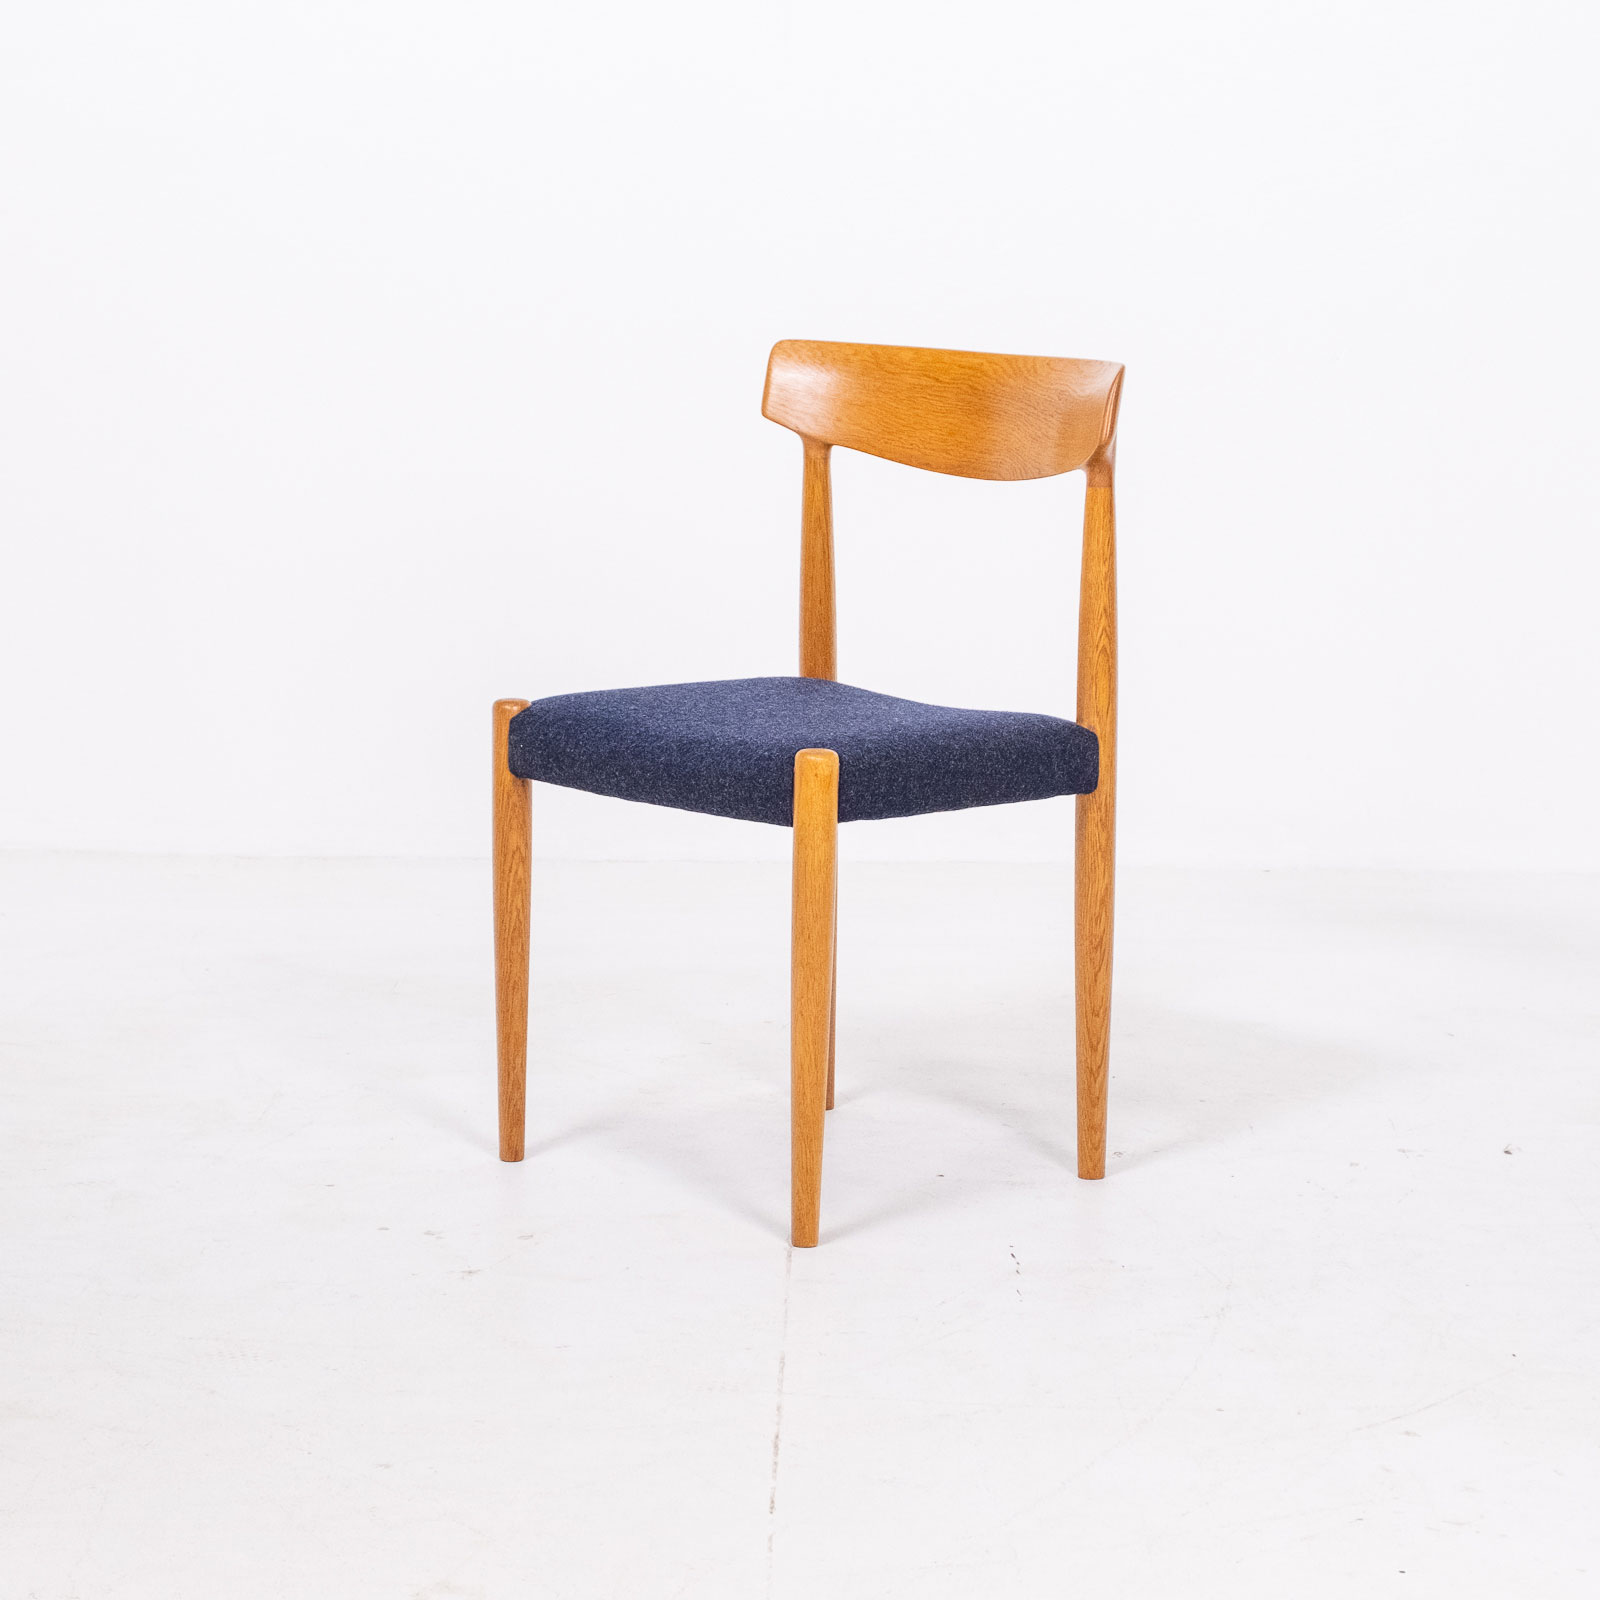 Set Of 6 Dining Chairs By Borge Mogensen For Fdb Mobler In Oak, 1960s, Denmark Hero